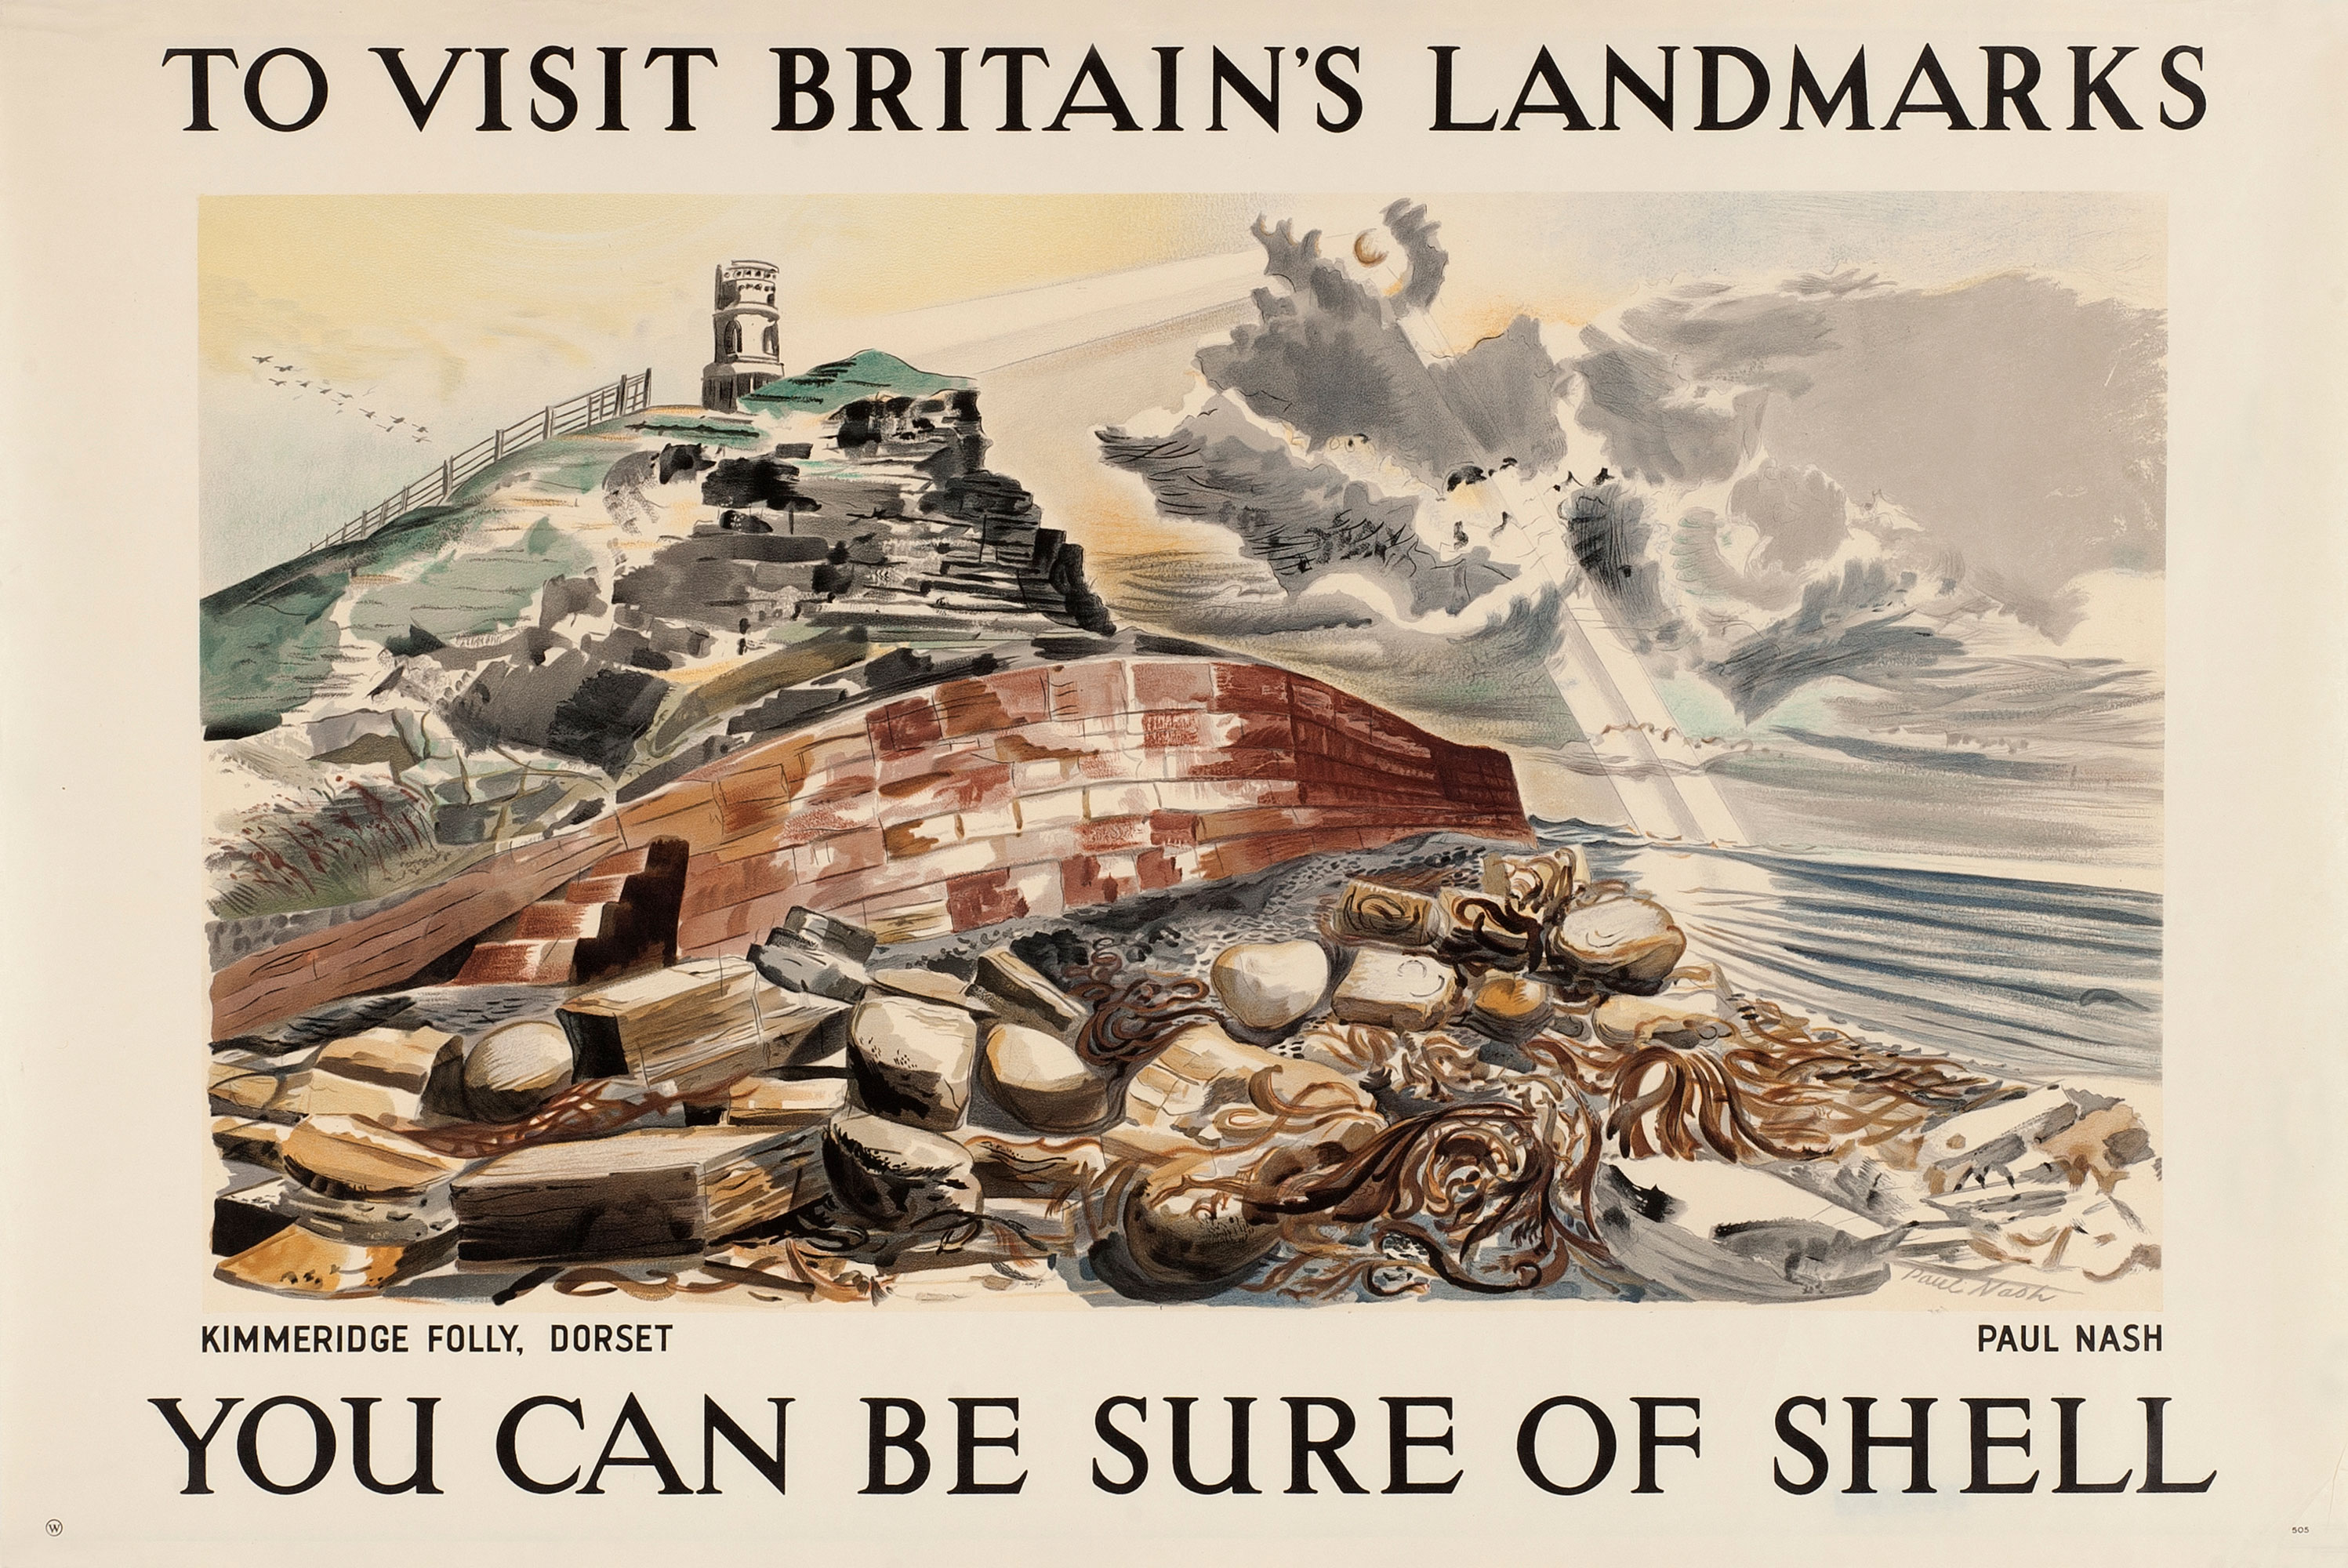 Shell poster 505, Kimmeridge Folly, Dorset by Paul Nash. Landscape painting of Kimmeridge Folly.